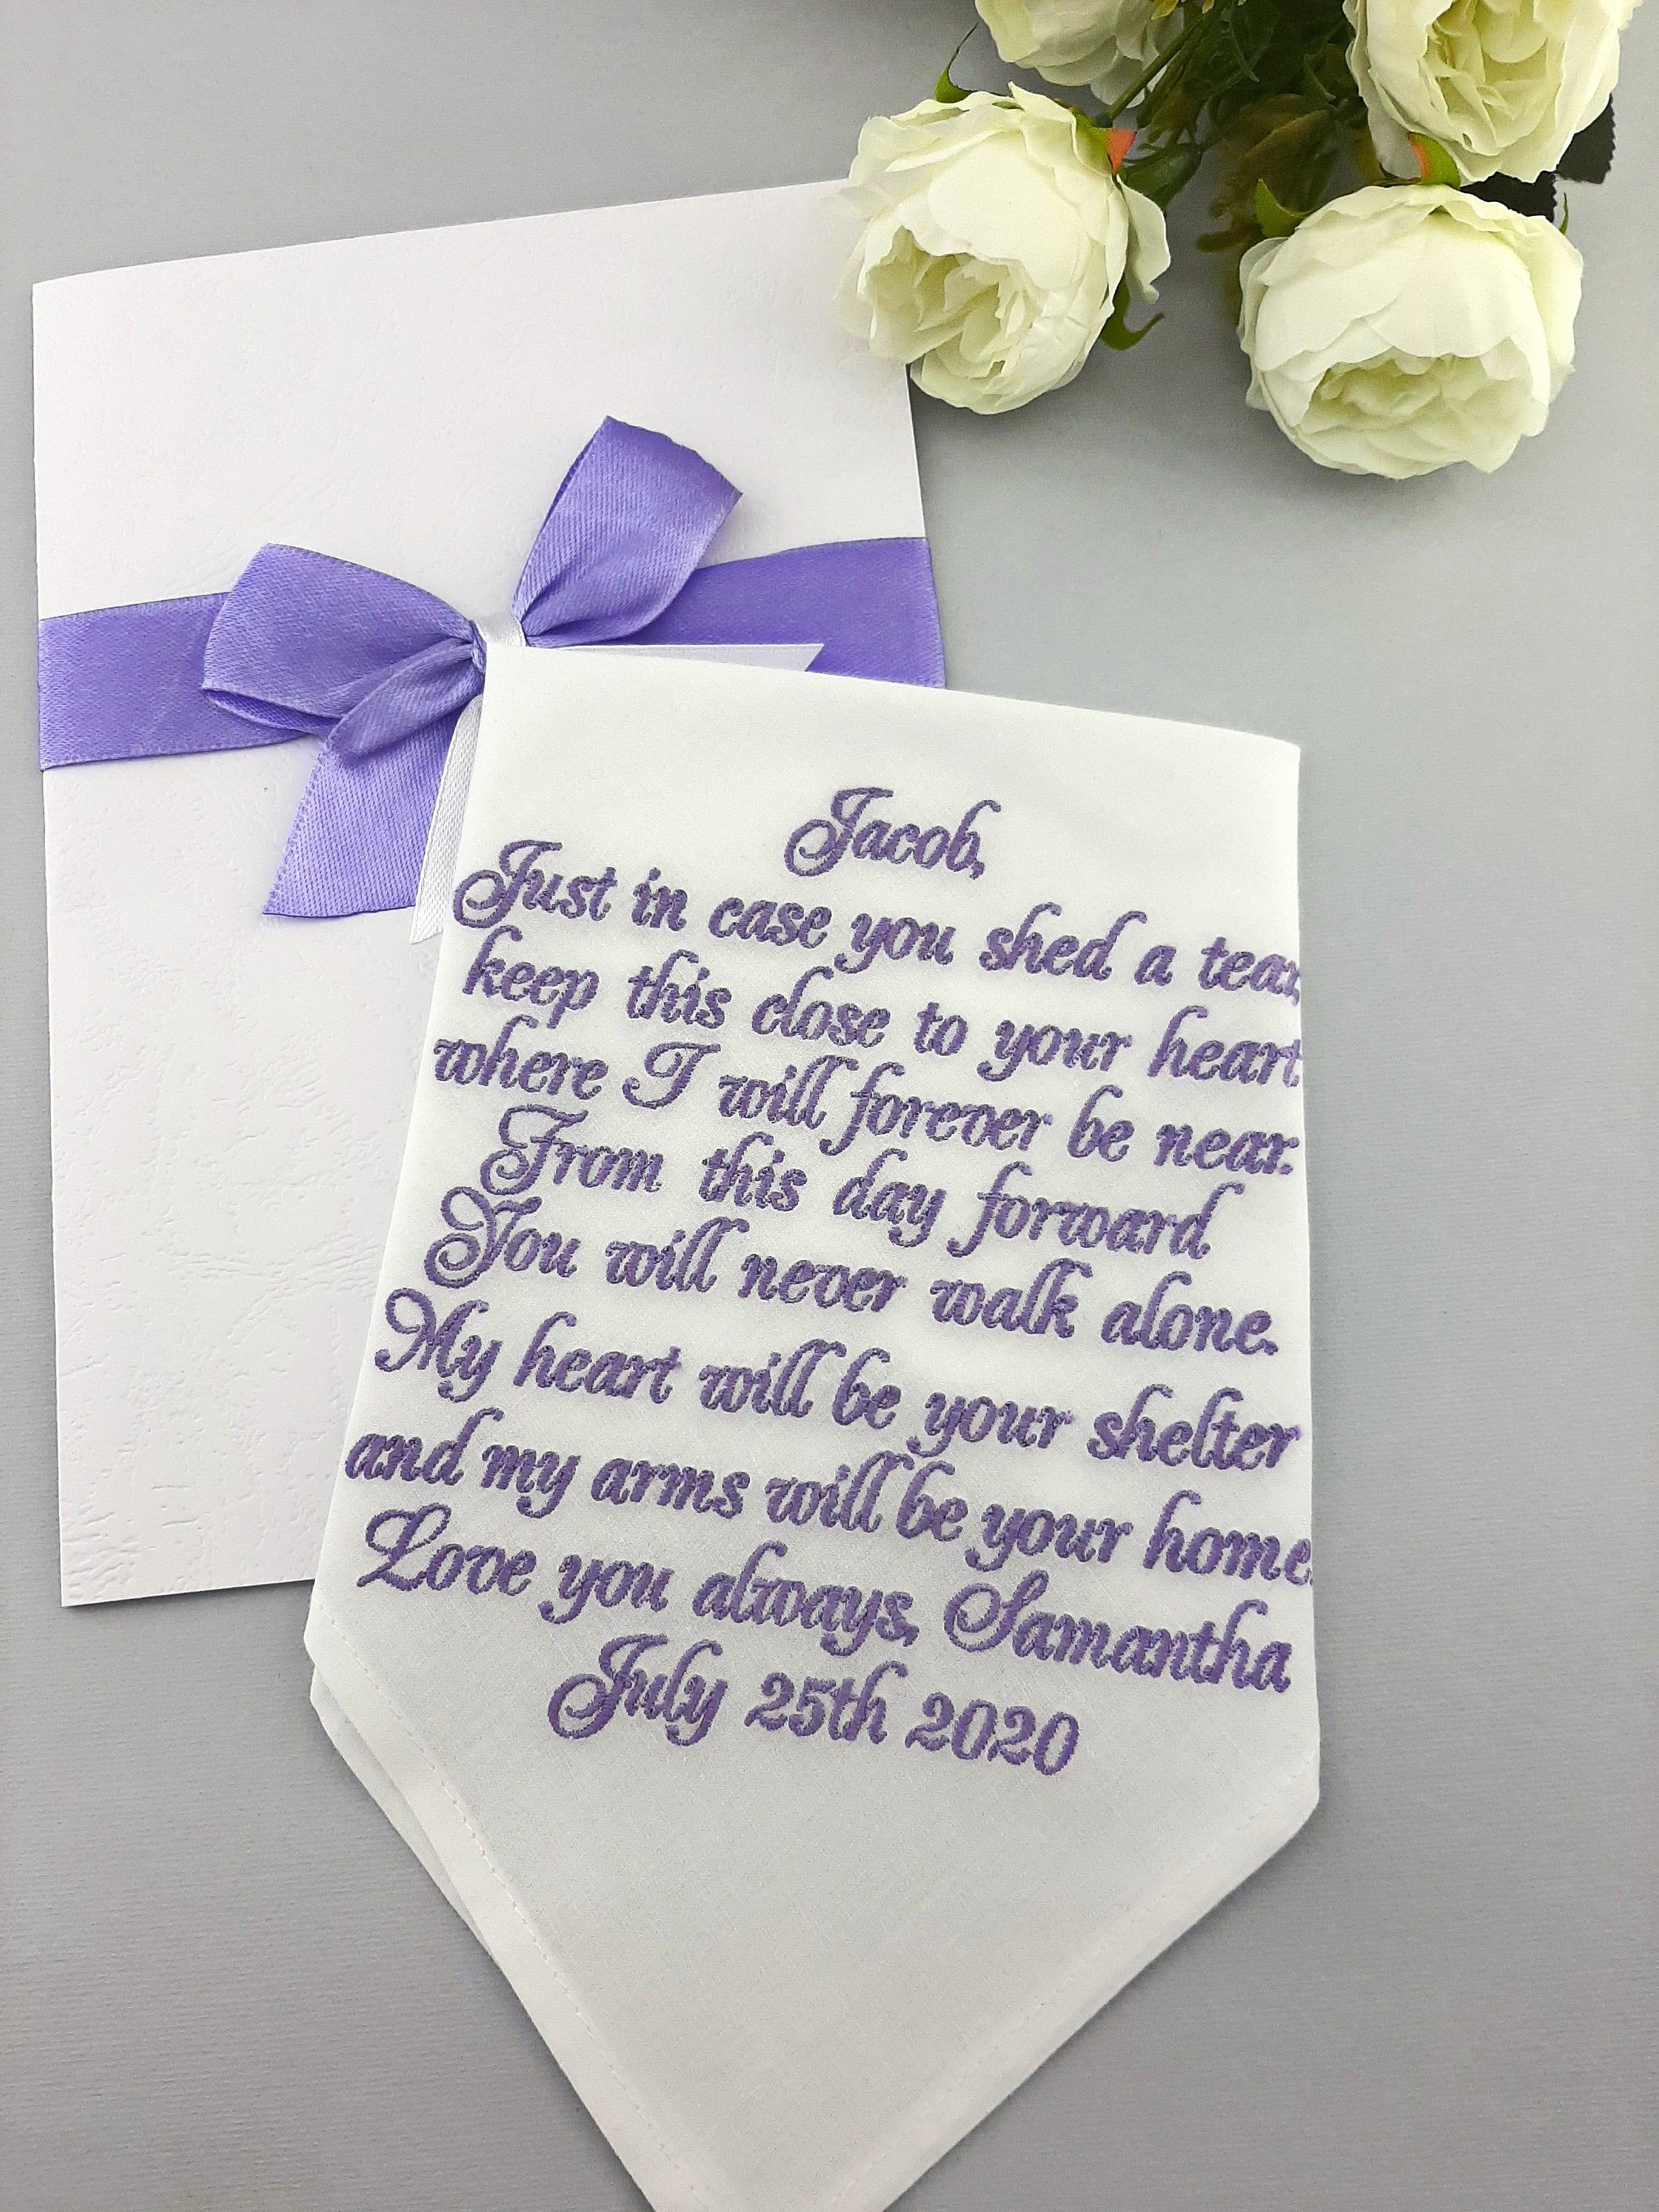 Groom gift from bride fiance gift for him future husband